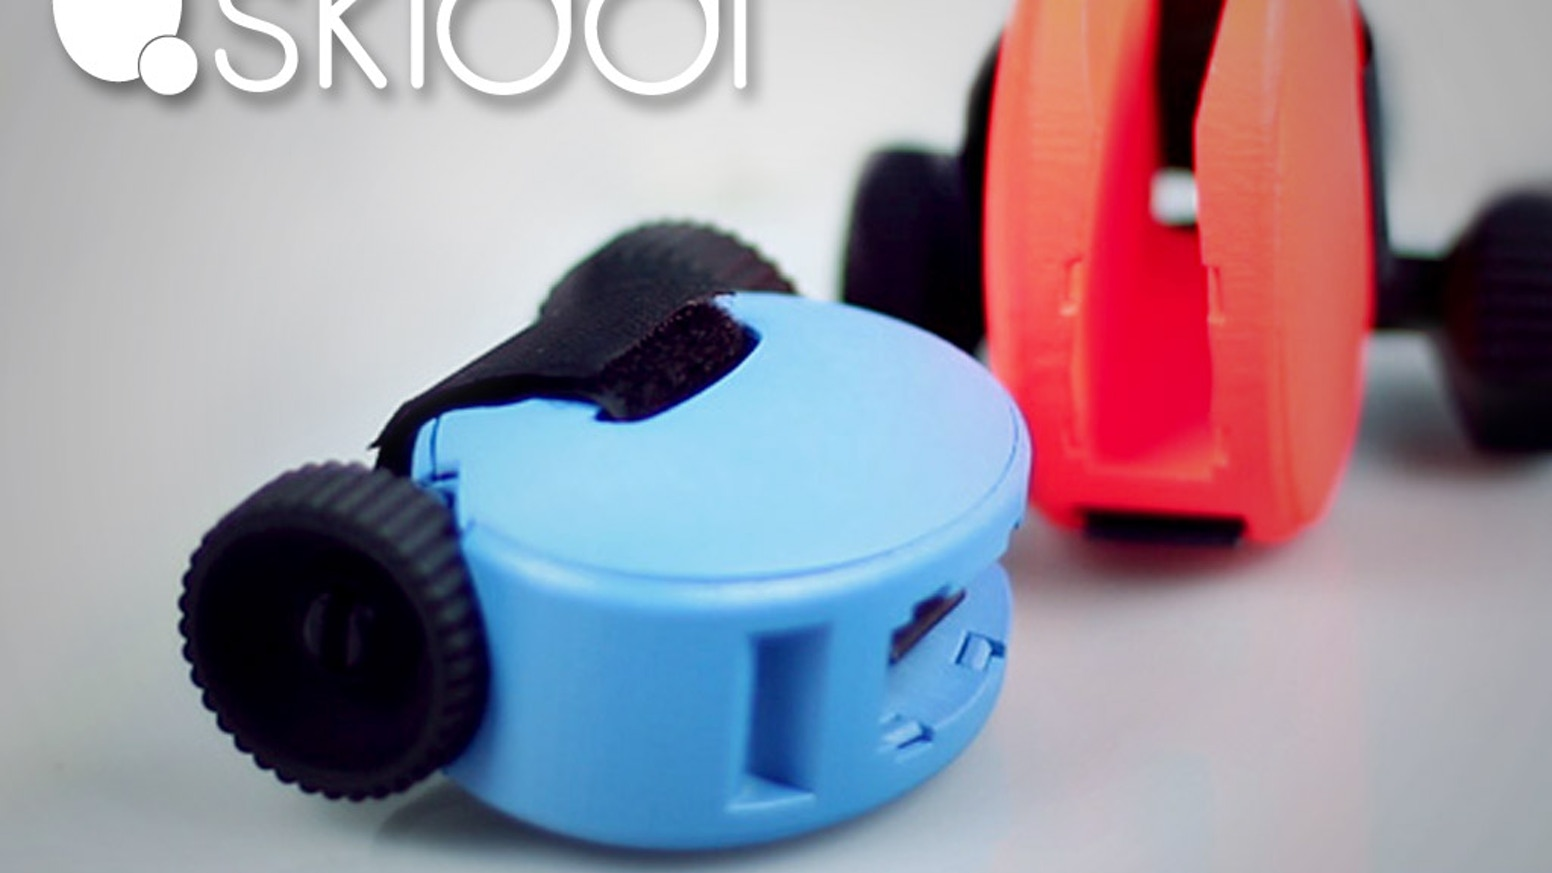 SKIDDI is the first ski-wheels pocket-sized.It's 100% made in Italy and it is a Social good.